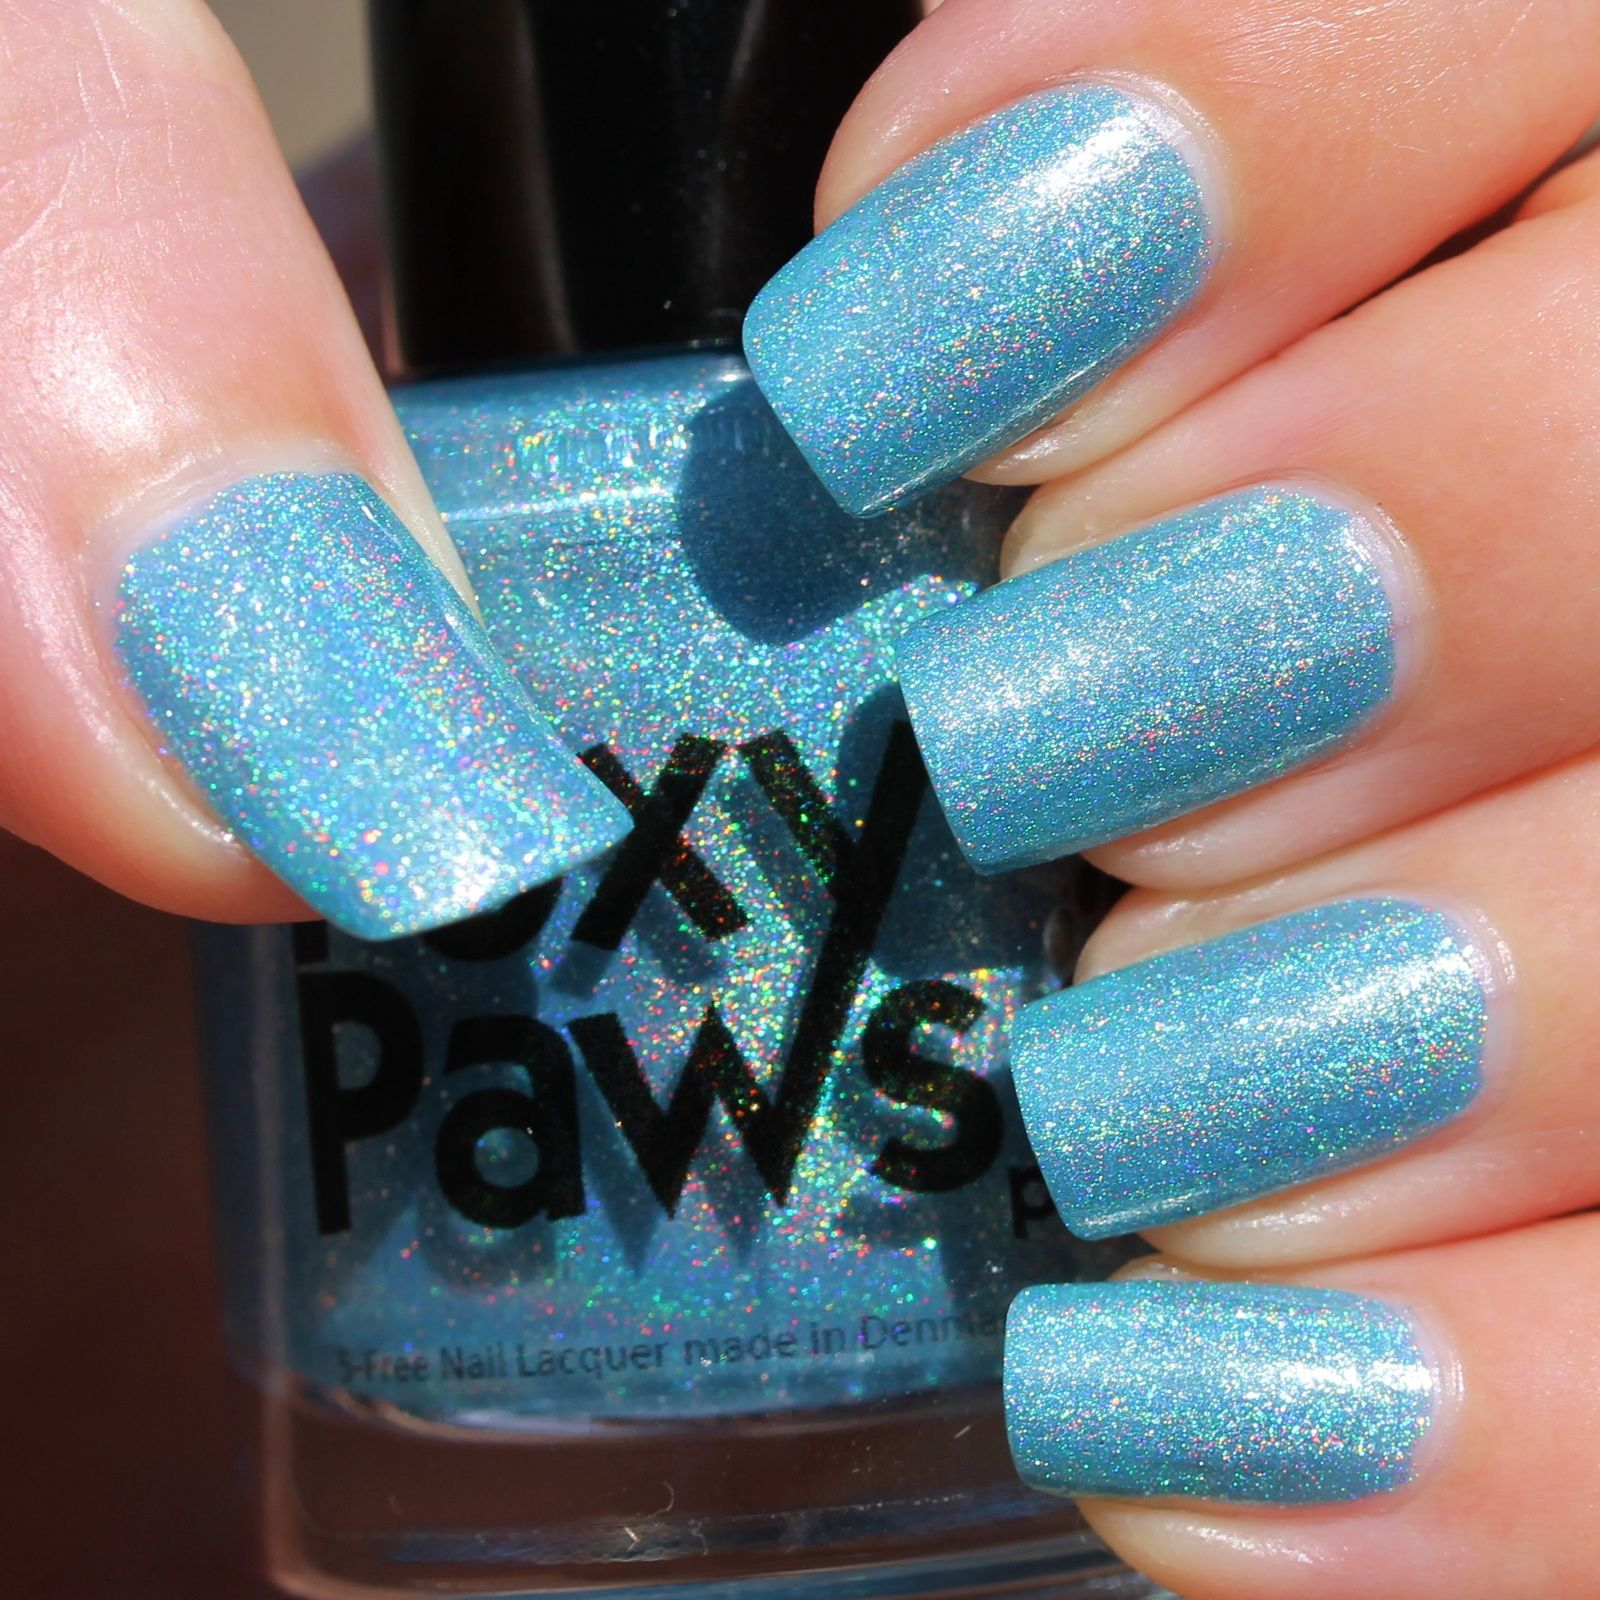 Foxy Paws Polish - Ray of Light (2 coats, no top coat)